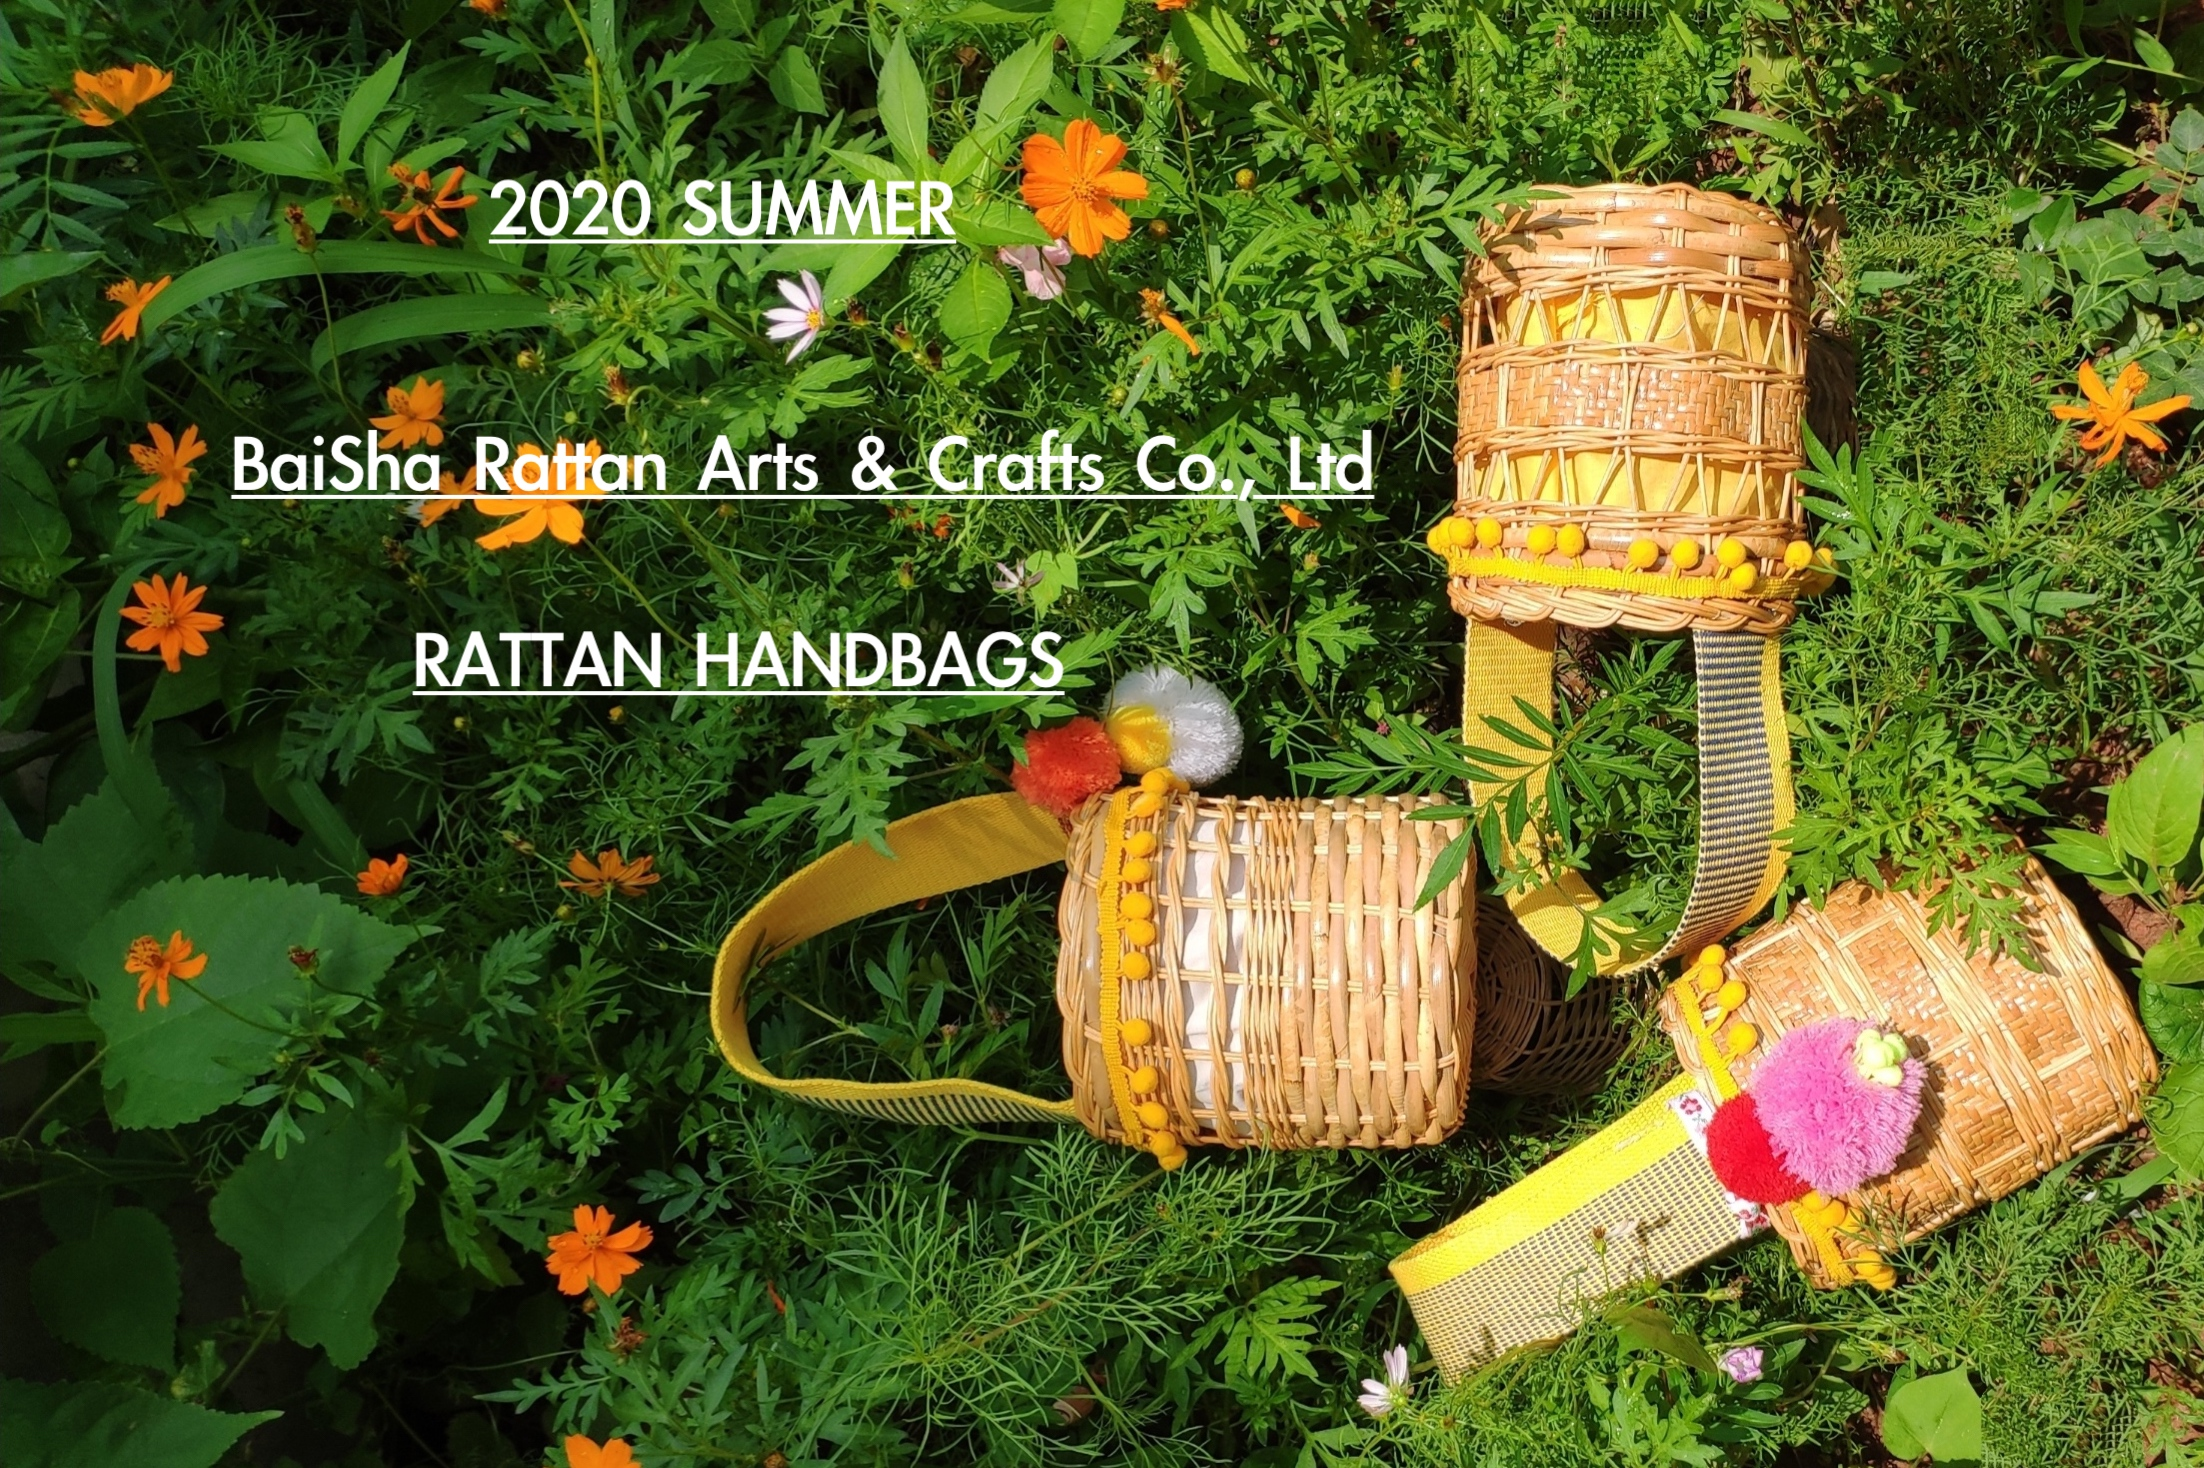 BAI SHA RATTAN ARTS & CRAFTS CO,LTD